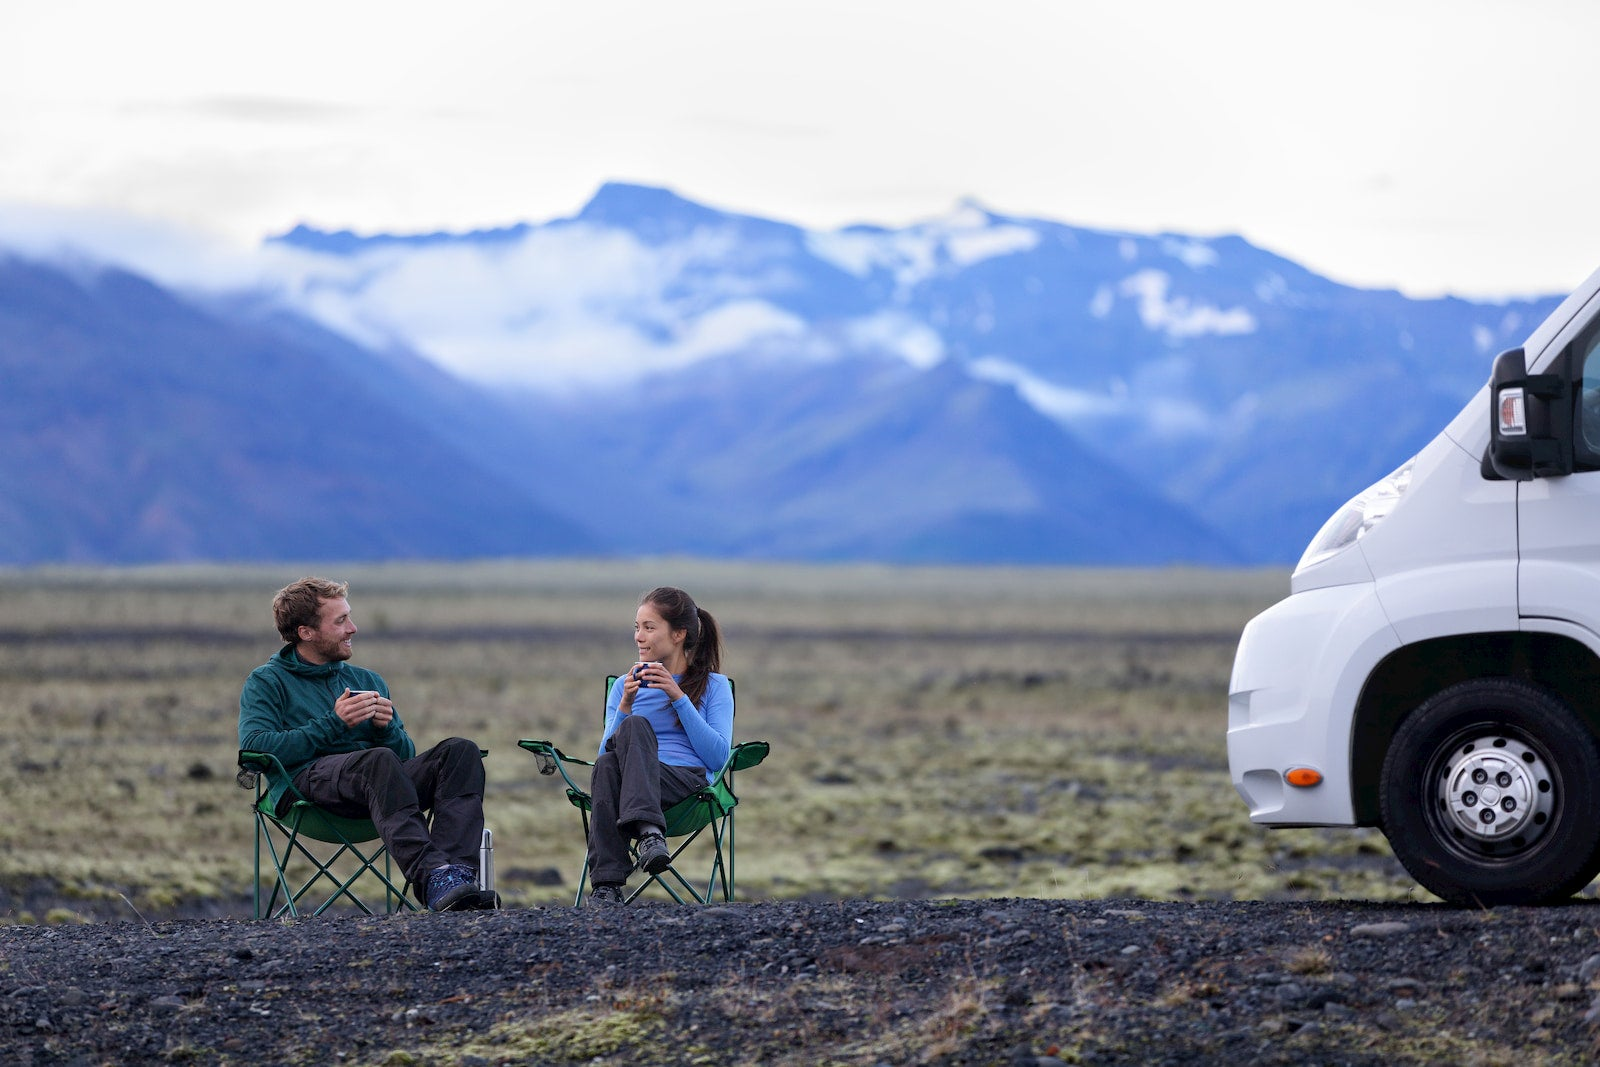 A couple sits in camp chairs i an open field beside an RV.